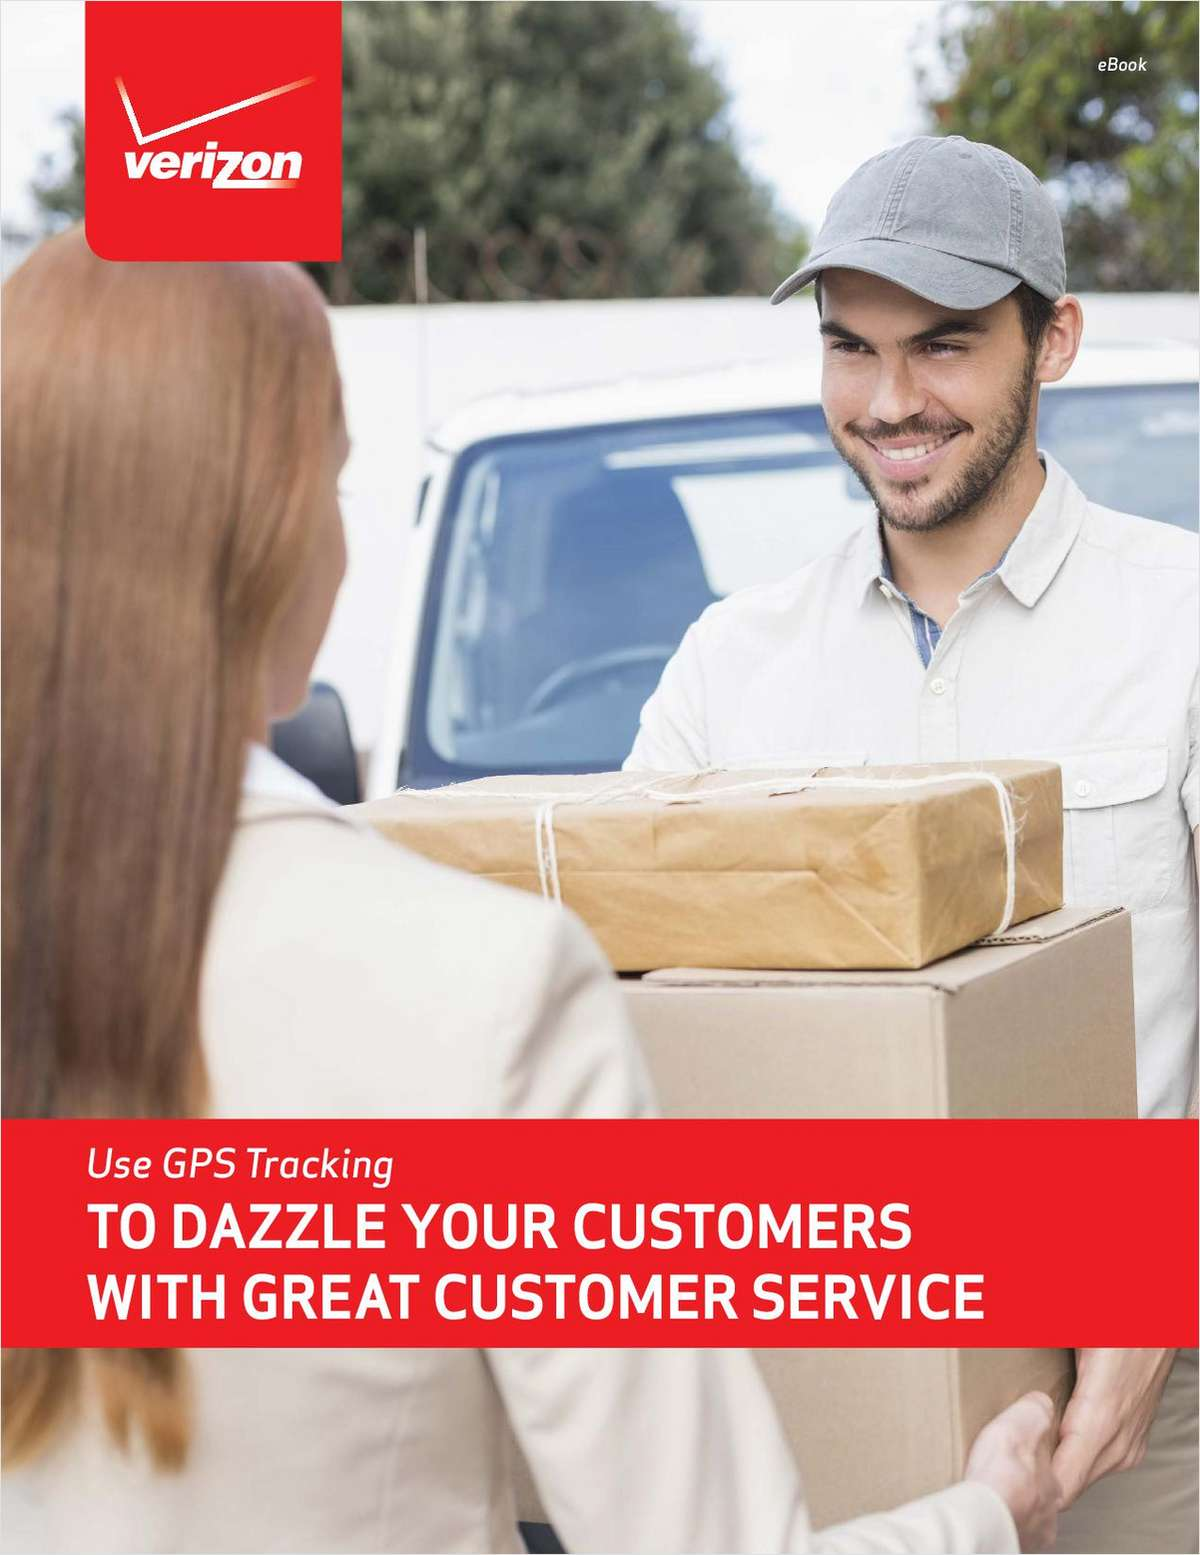 Use GPS Tracking To Dazzle Your Customers with Great Customer Service